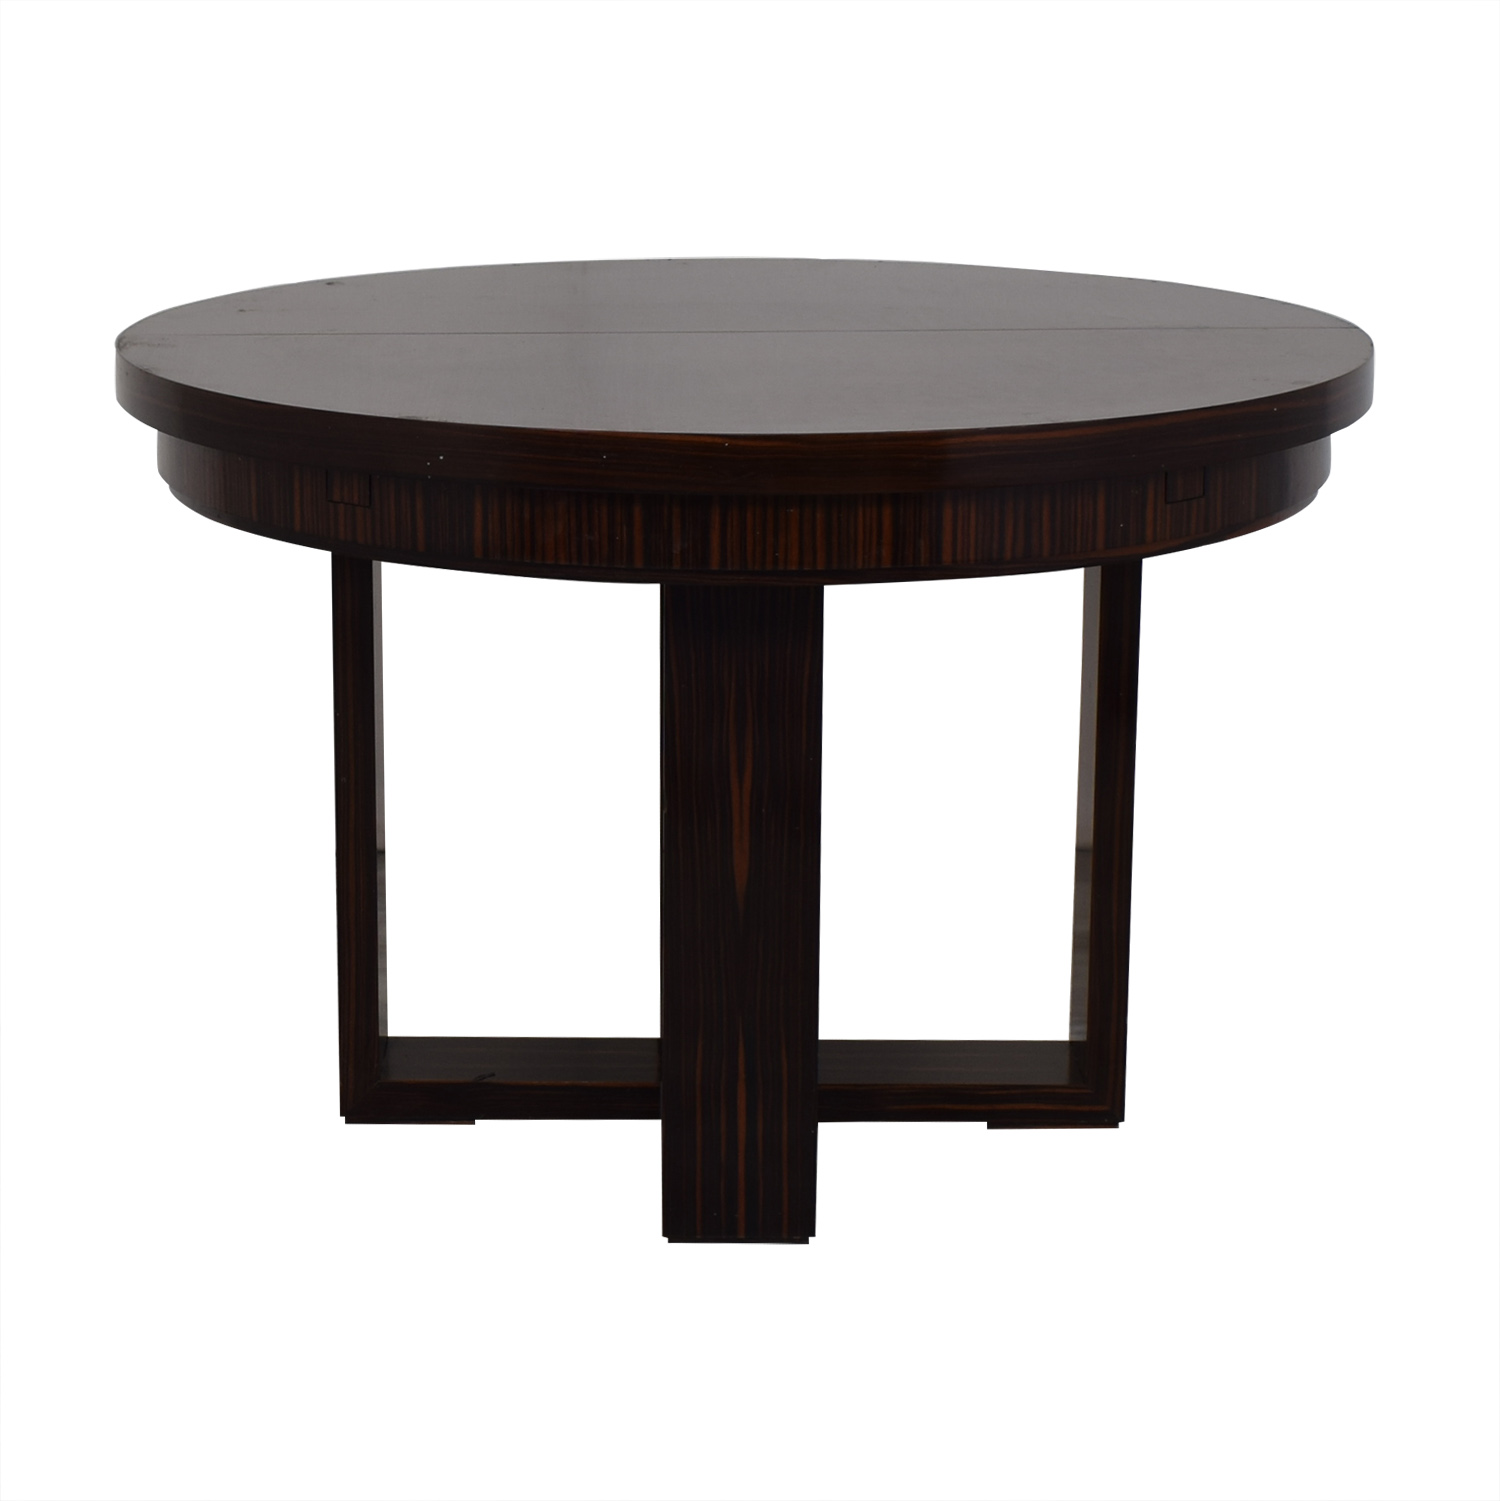 Annibale Colombo Annibale Colombo Extension Dining Table discount